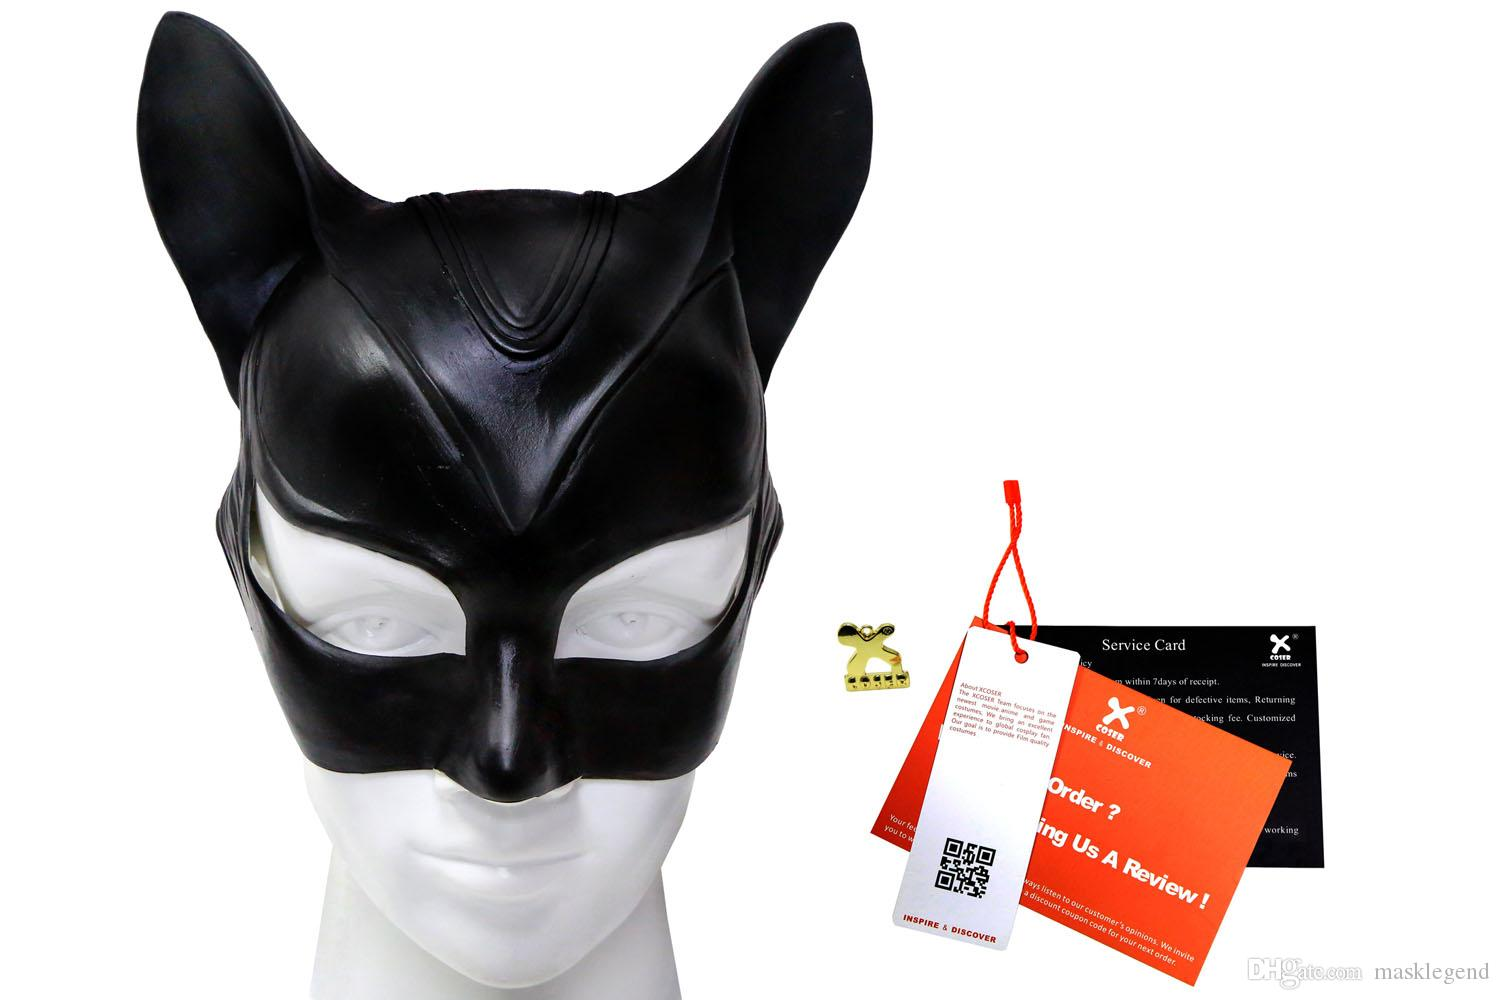 2018 Catwoman Mask Batman The Dark Knight Rises Latex Teens Full Head Mask Deluxe Cosplay Costume Accessory Xcoser From Masklegend $27.13 | Dhgate.Com  sc 1 st  DHgate.com & 2018 Catwoman Mask Batman The Dark Knight Rises Latex Teens Full ...